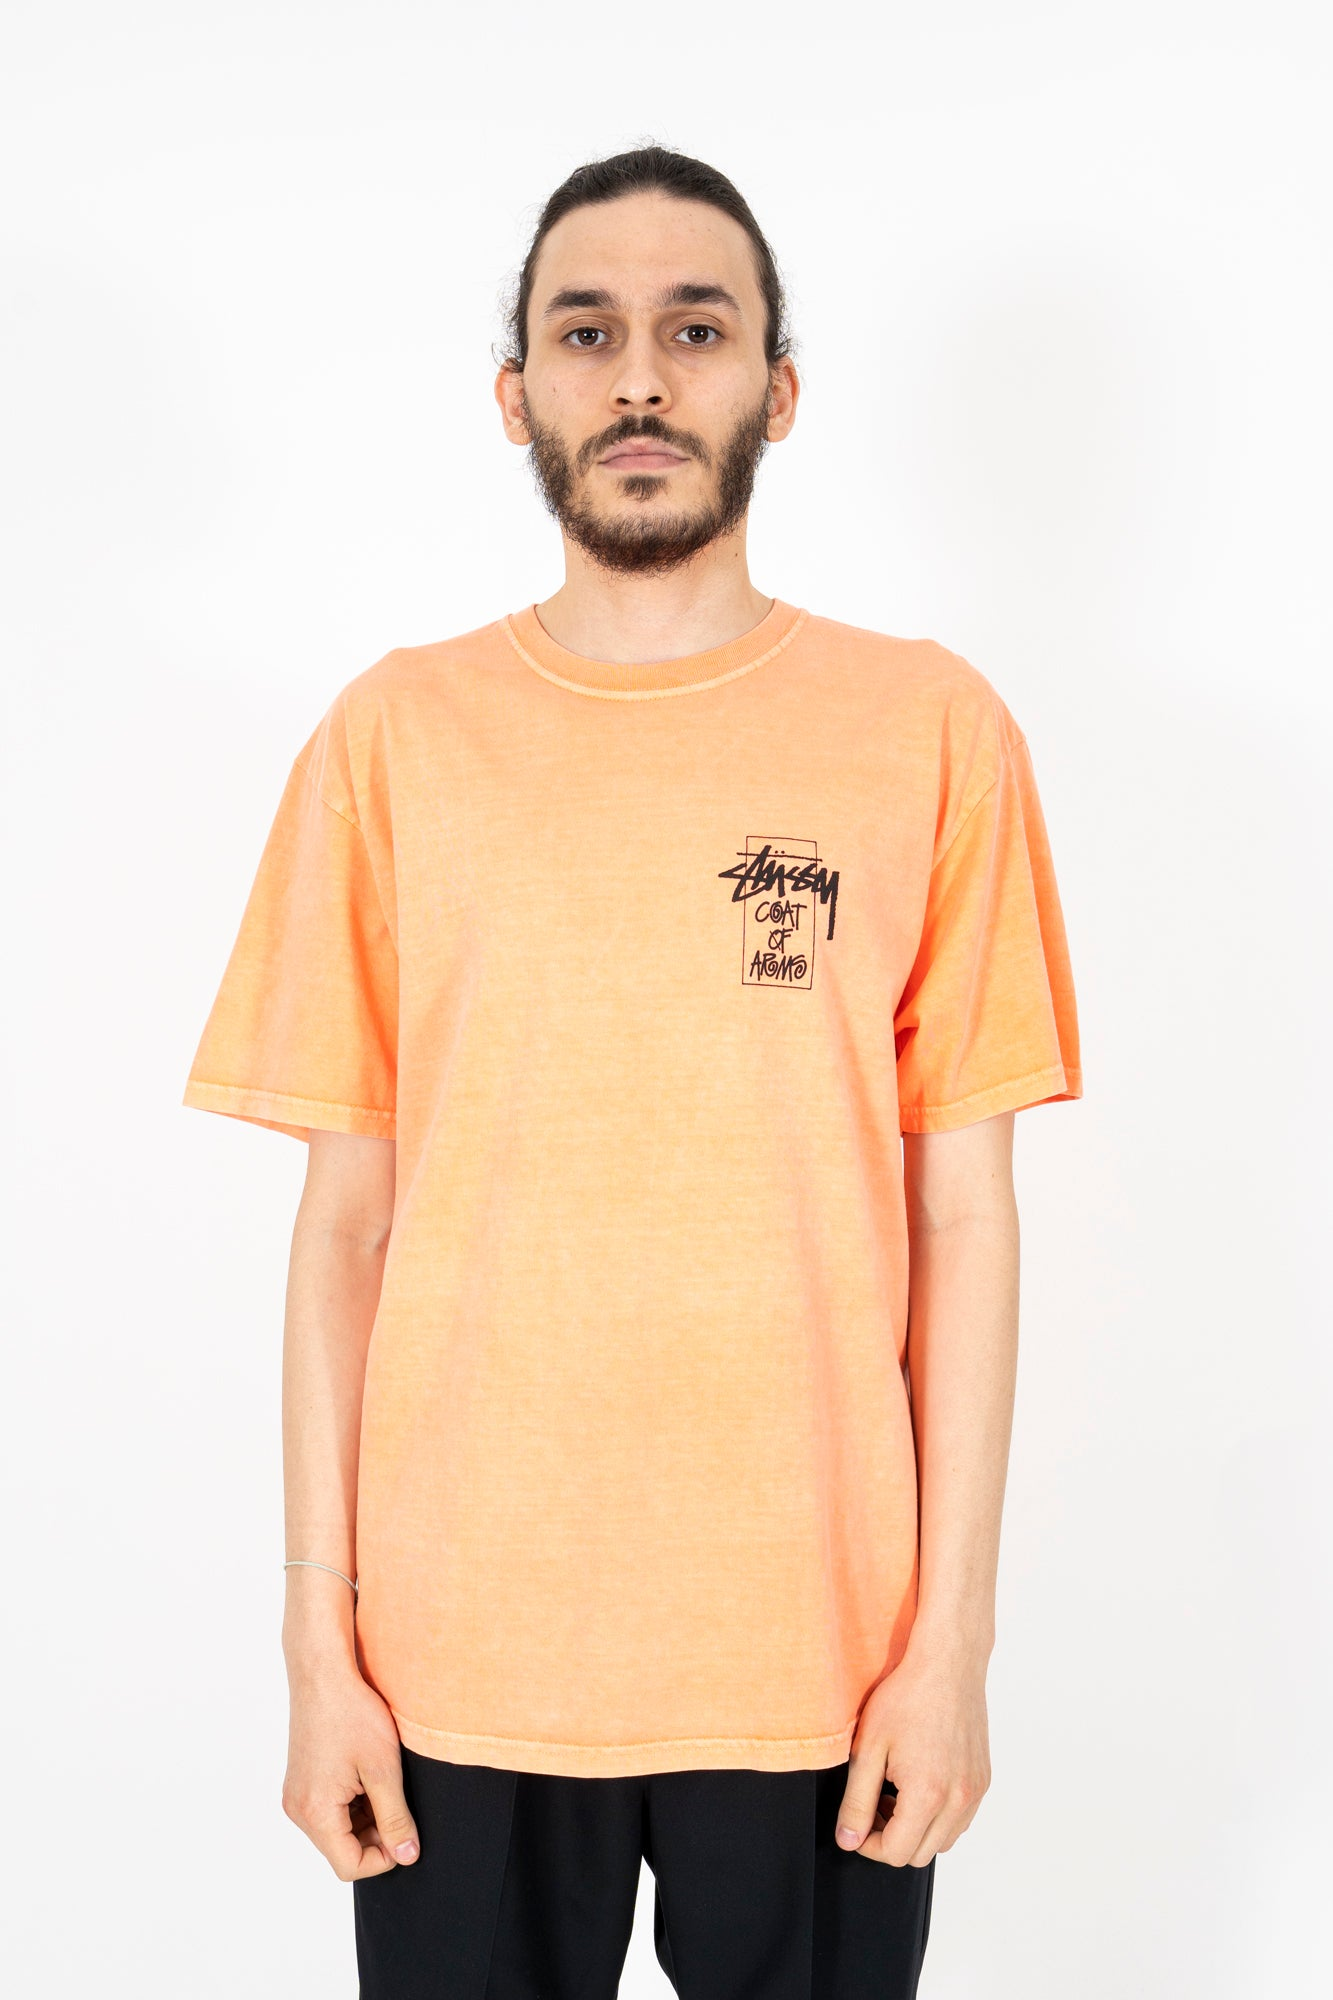 Coat Of Arms Pig. Dyed Tee